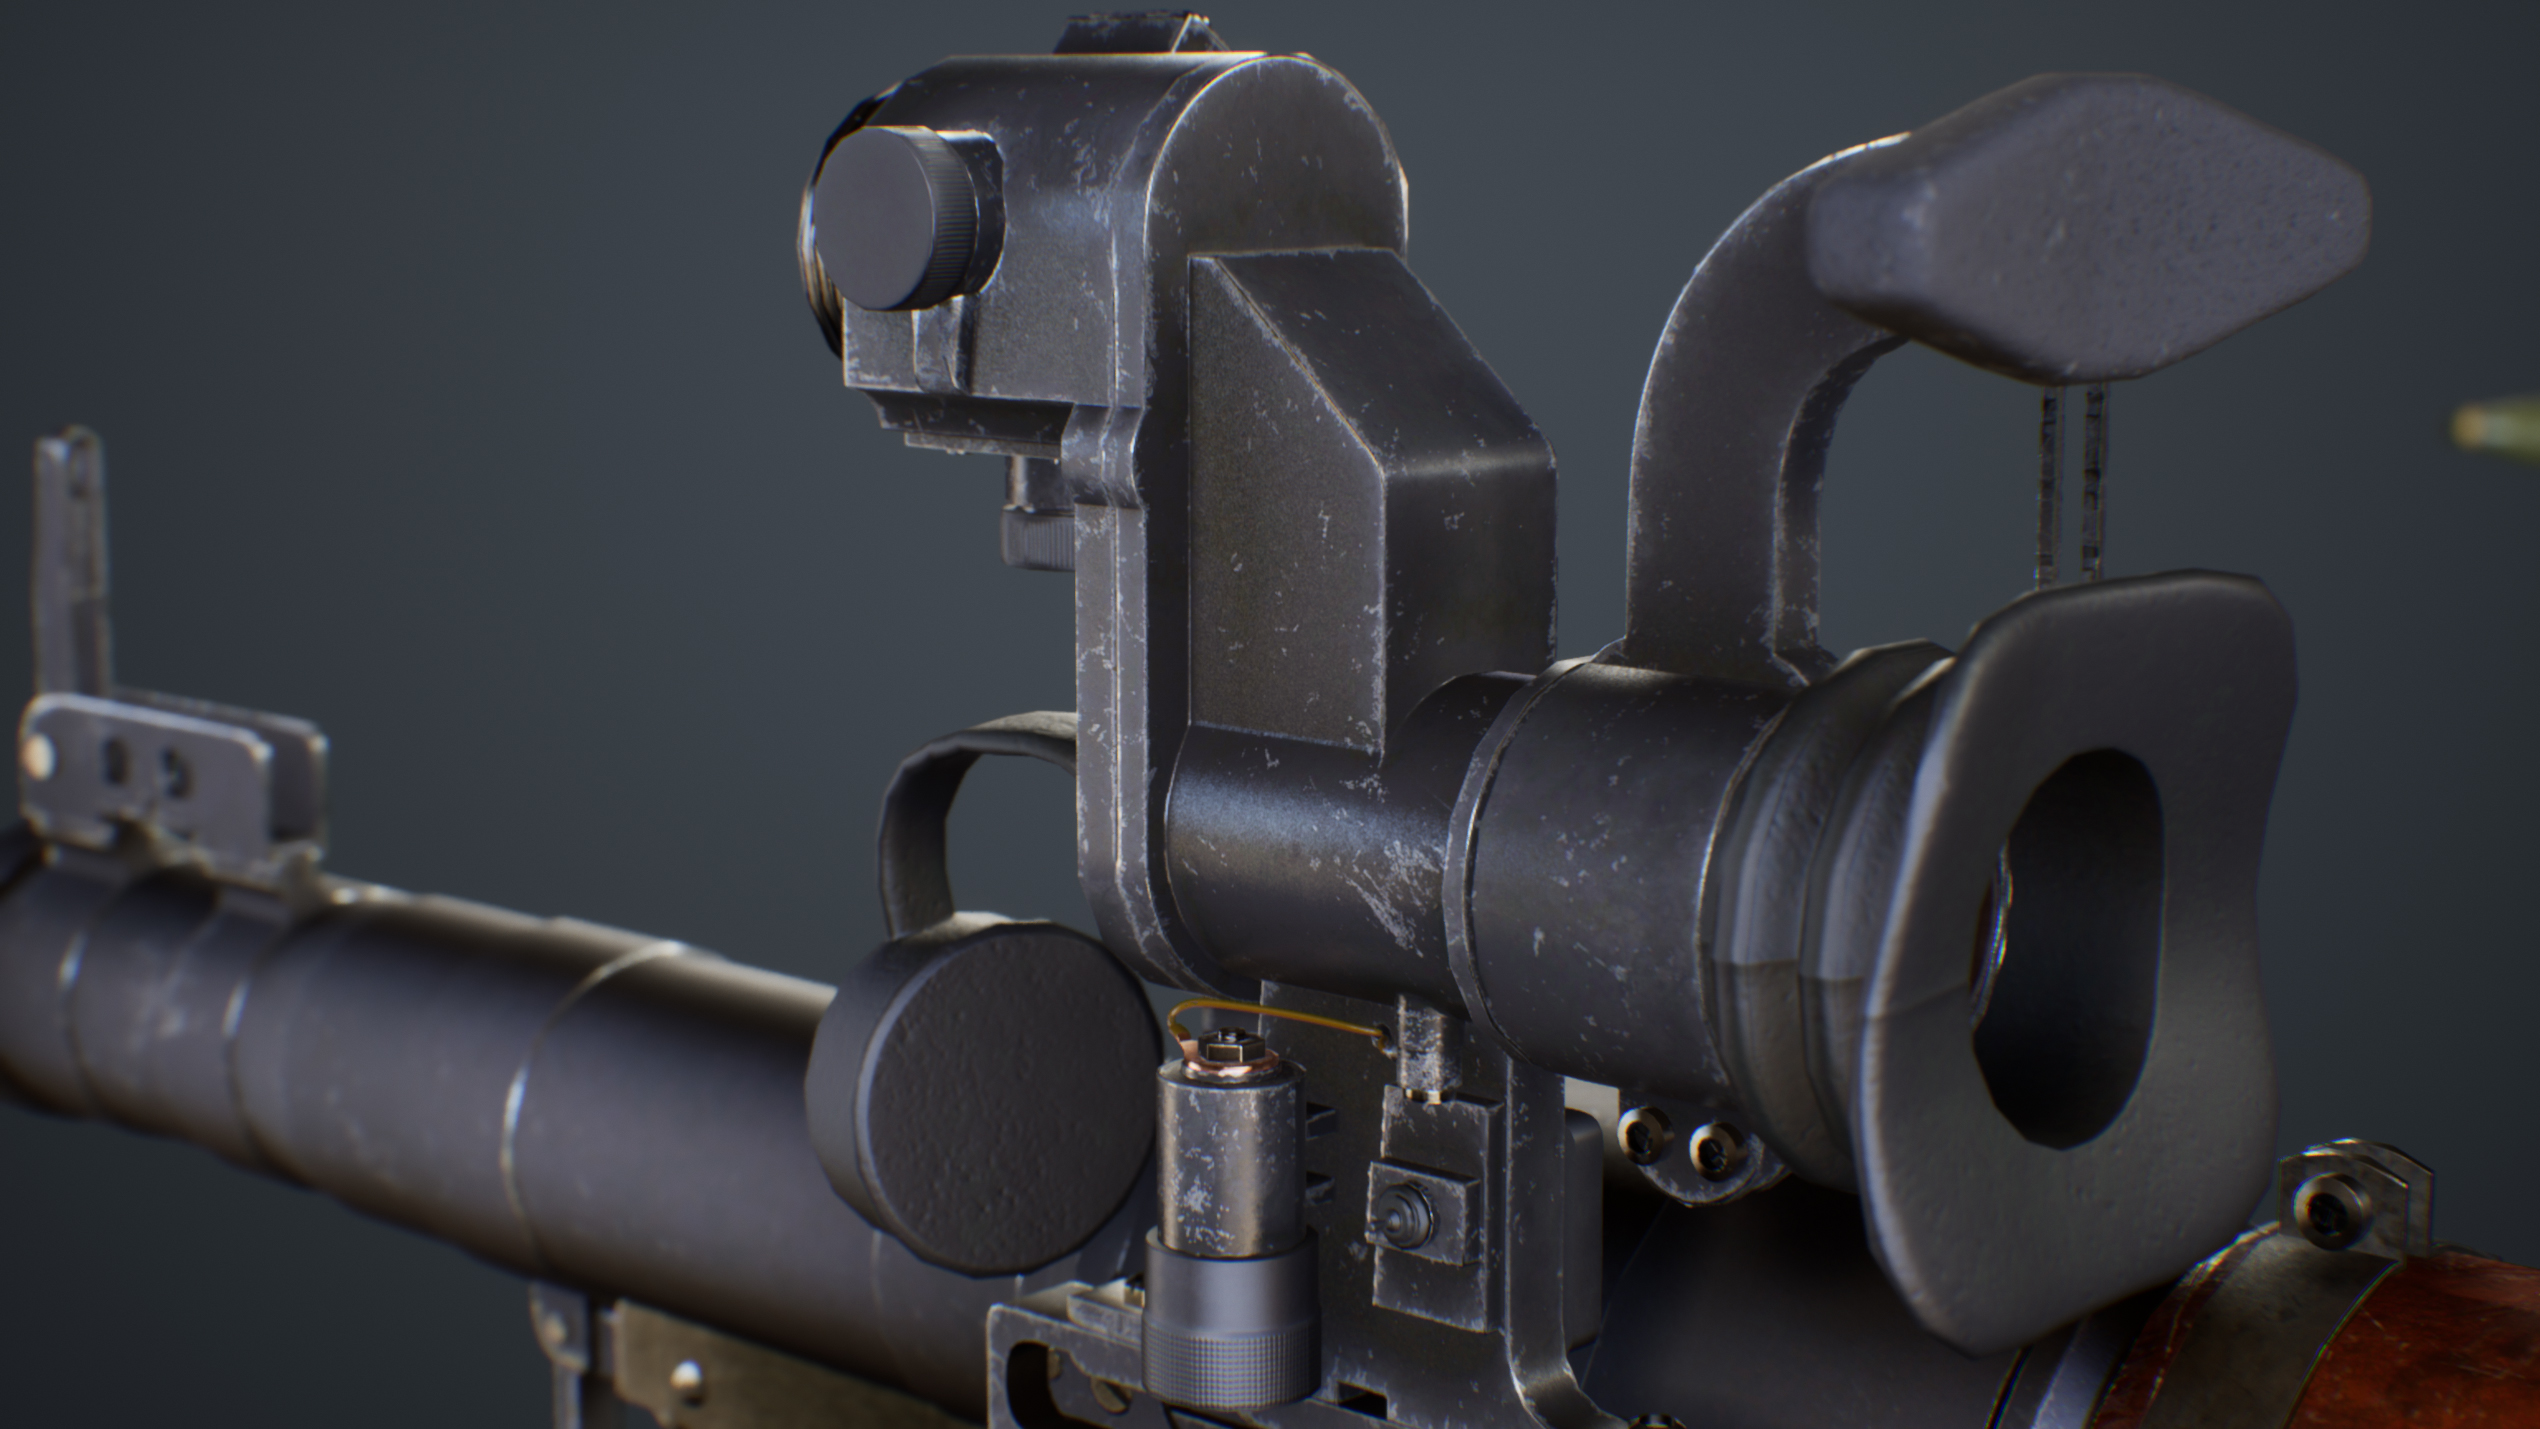 UE4 screenshot close up detailed back view of the PRG scope